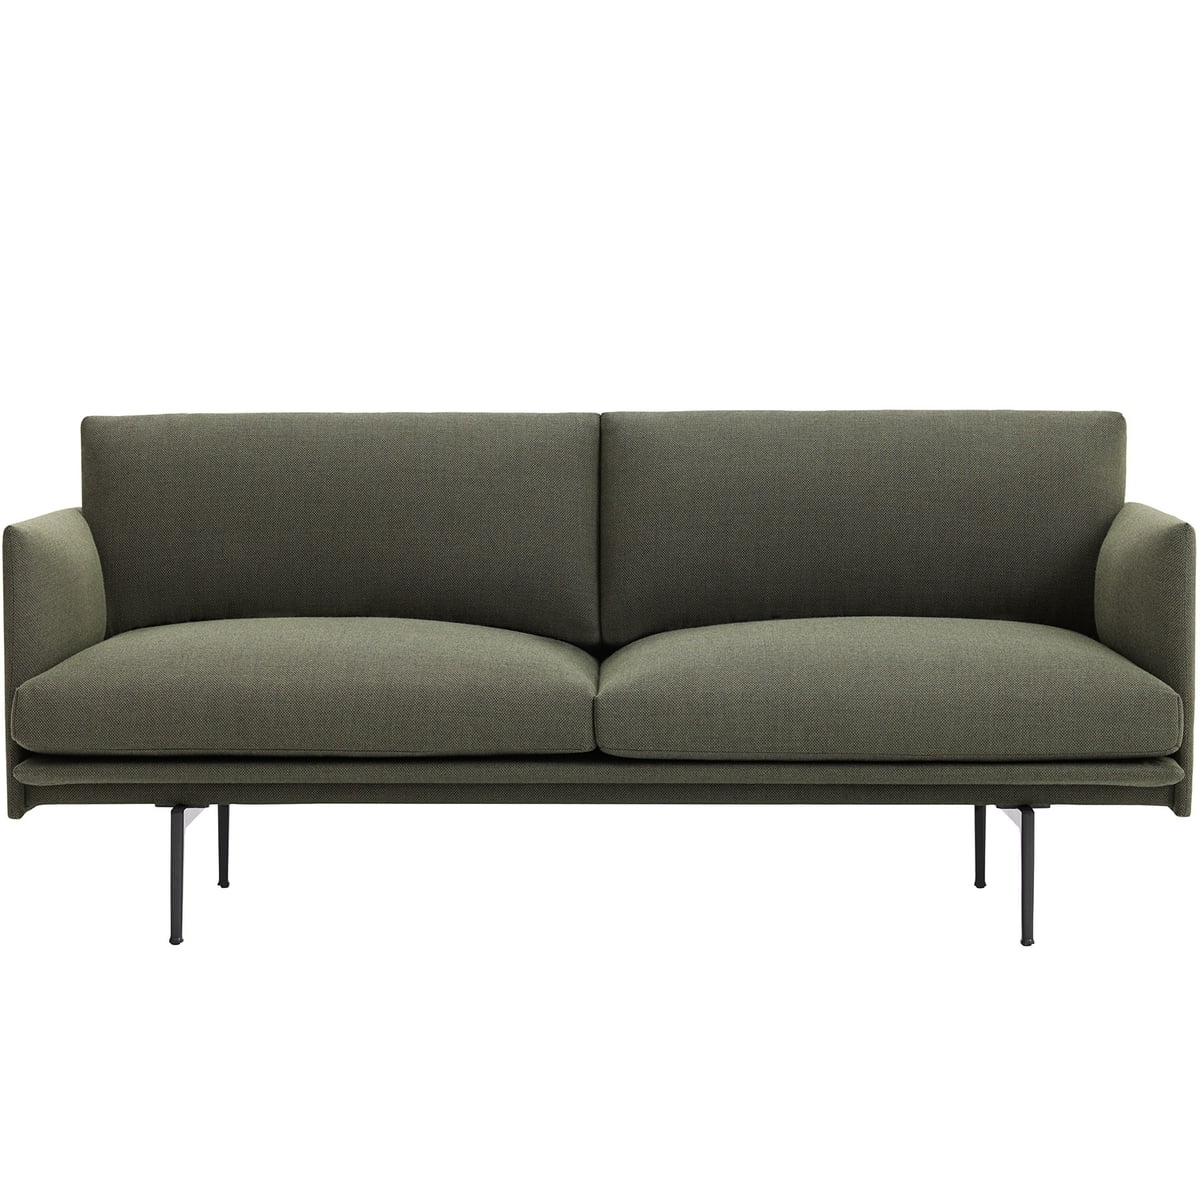 Trendy 2 Seater Sofas Inside Outline Sofa 2 Seatermuuto In The Shop (View 4 of 20)